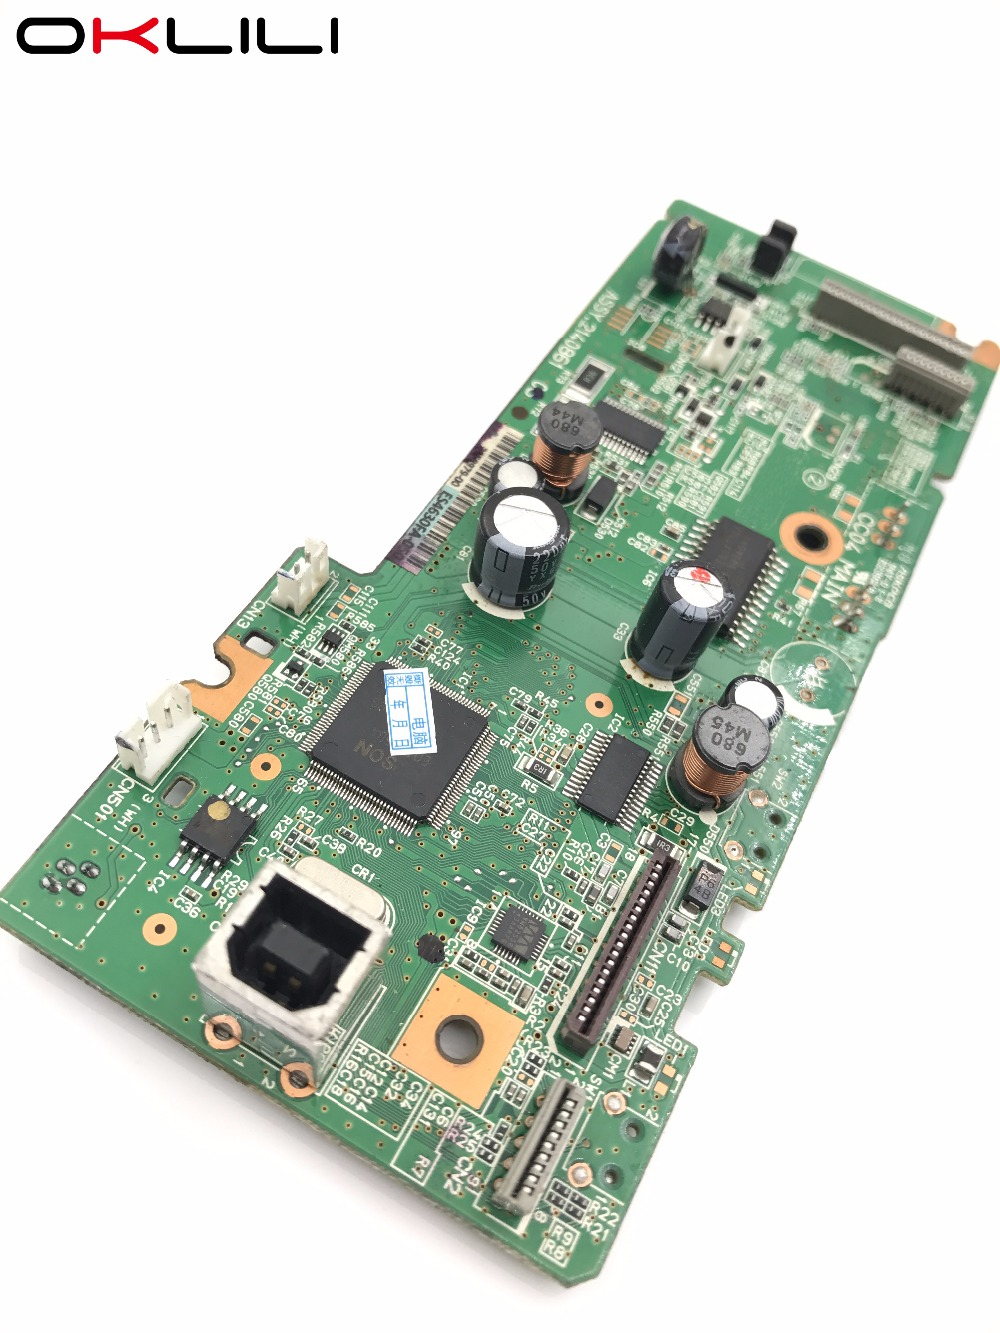 2140861 2158979 2140863 PCA ASSY Formatter Board logic Main Board MainBoard mother board for Epson L210 L211 L350 L312 L382